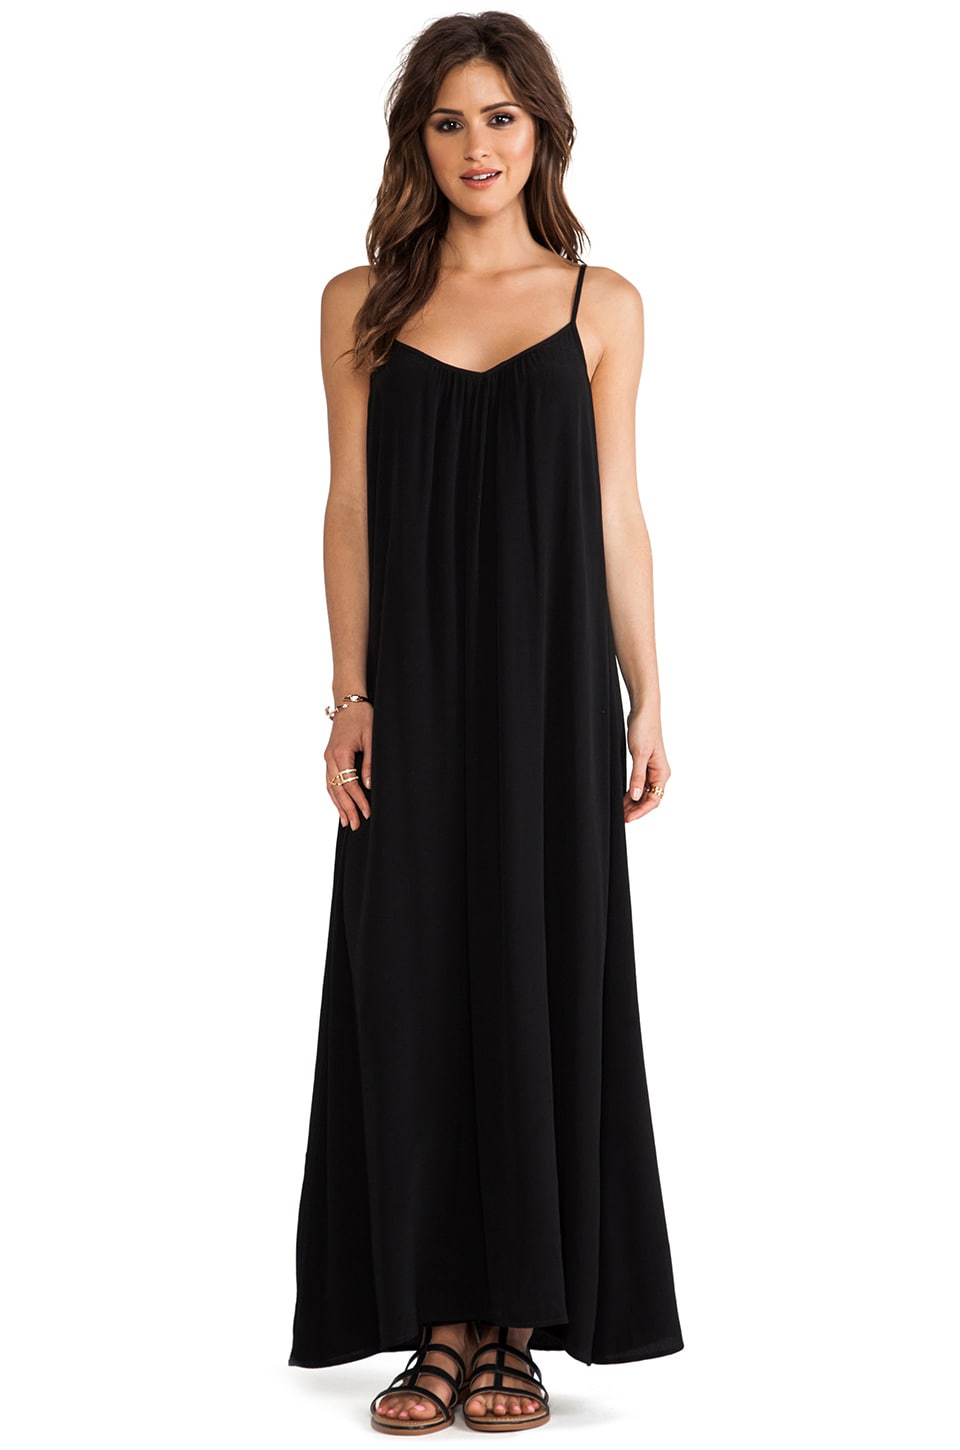 SAM&LAVI Meadow Dress in Black